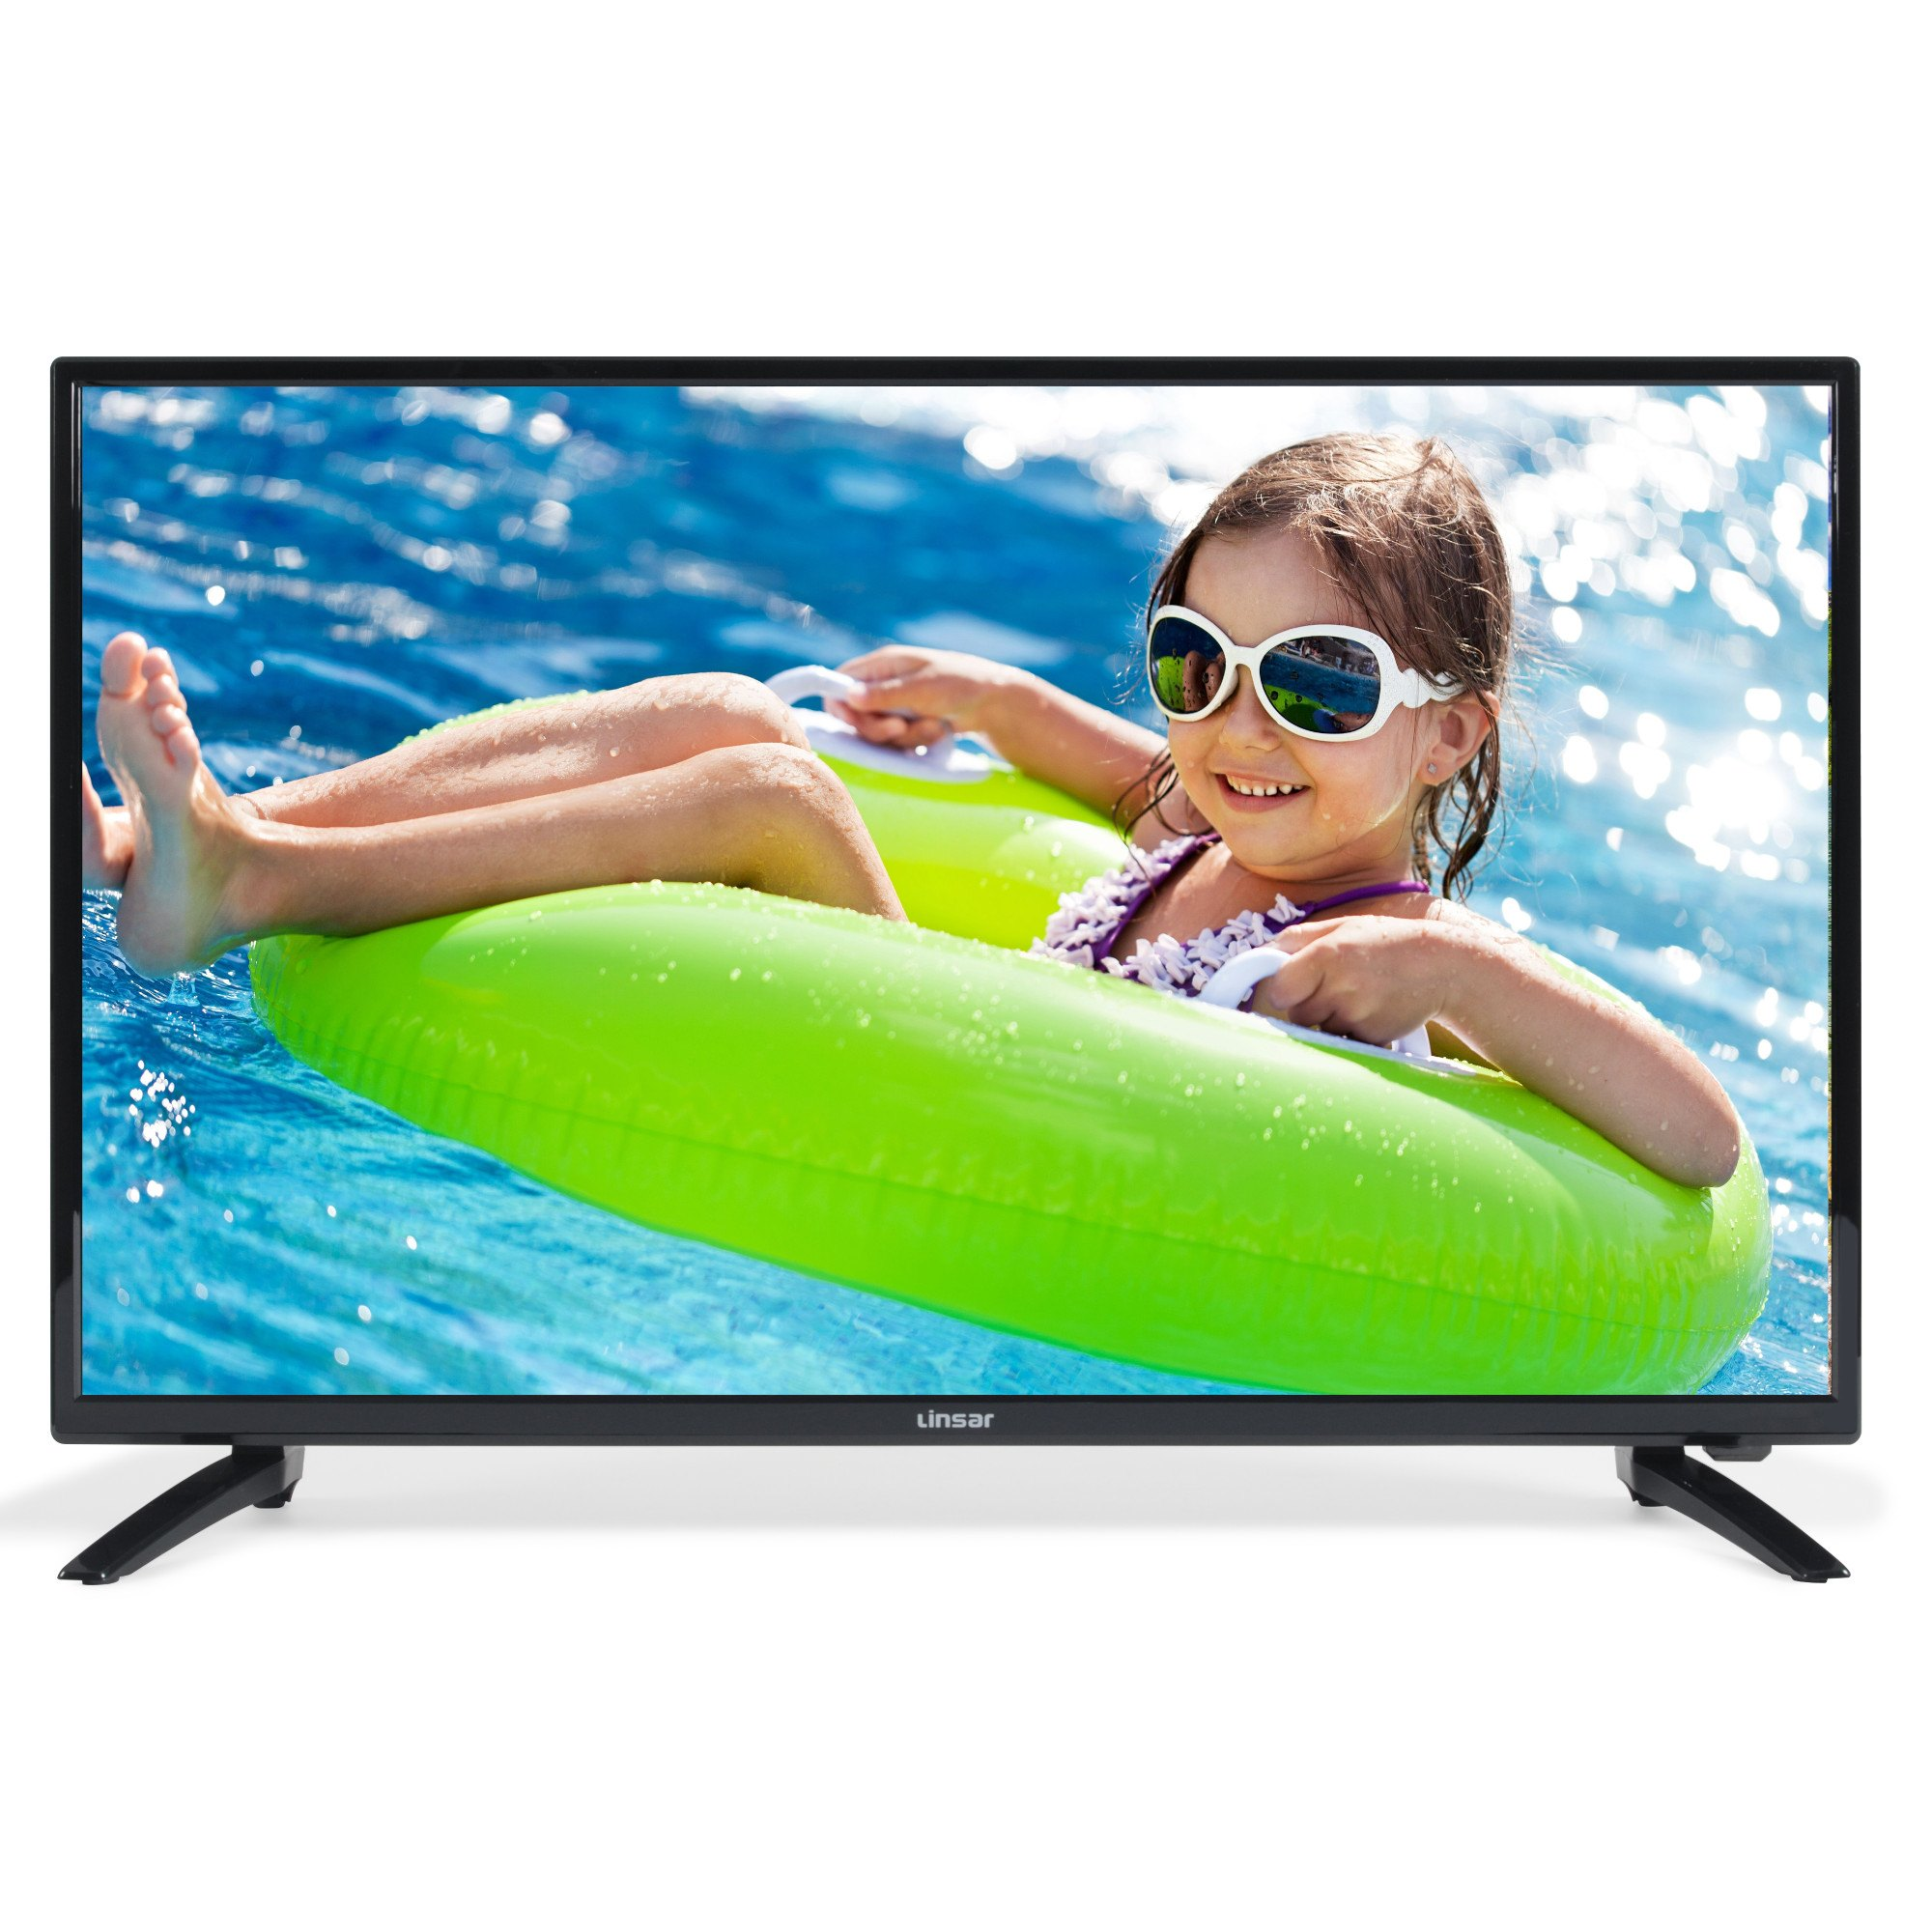 """Linsar 40DVD400 40"""" HD Ready LED TV with Built In DVD Player"""